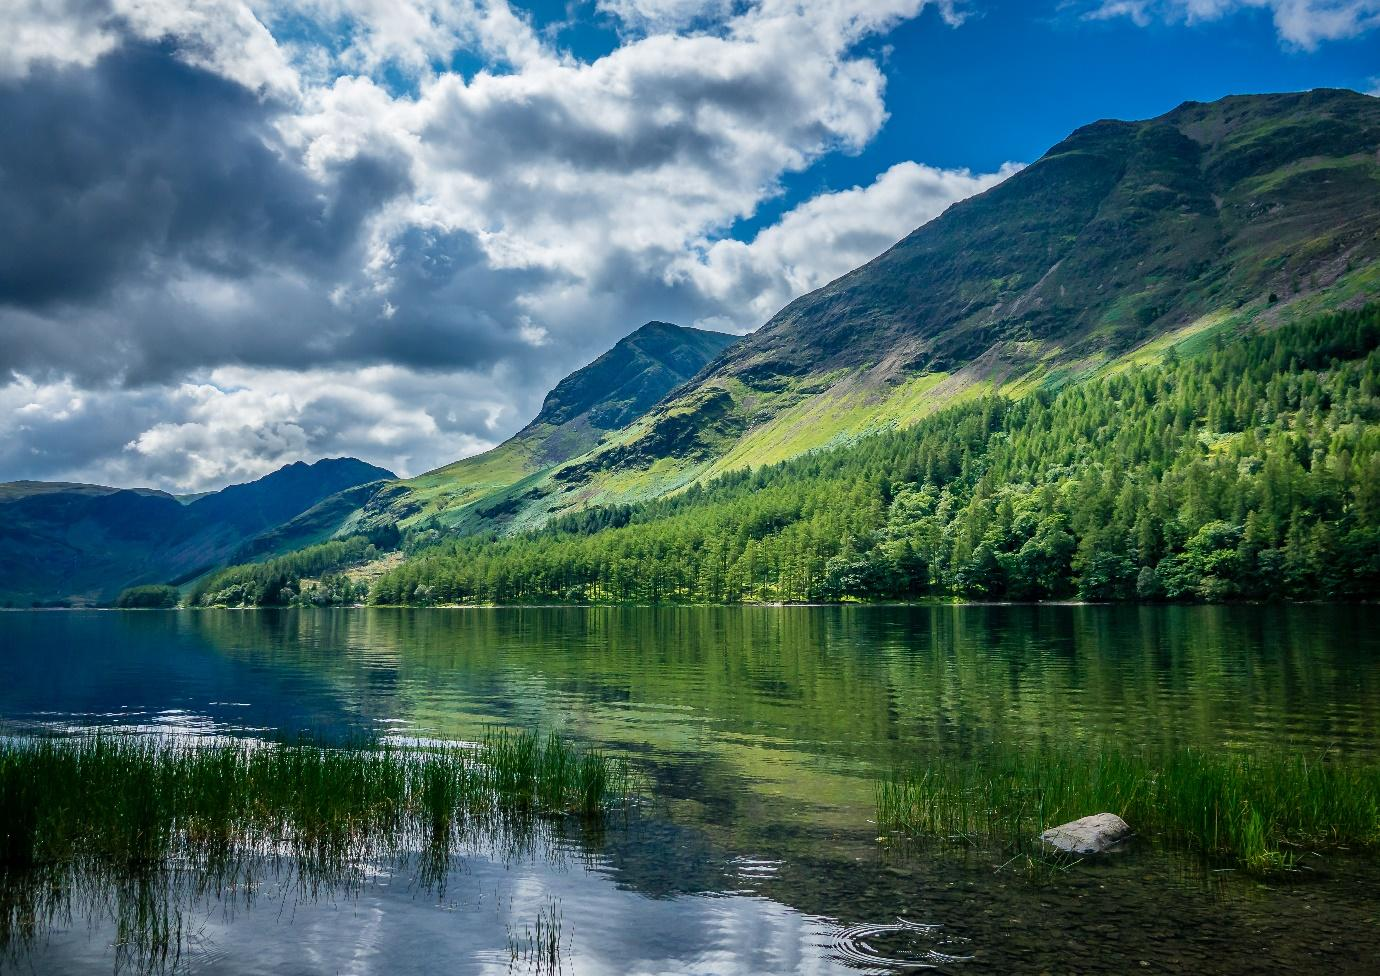 A picture containing water, nature, lake, mountain  Description automatically generated